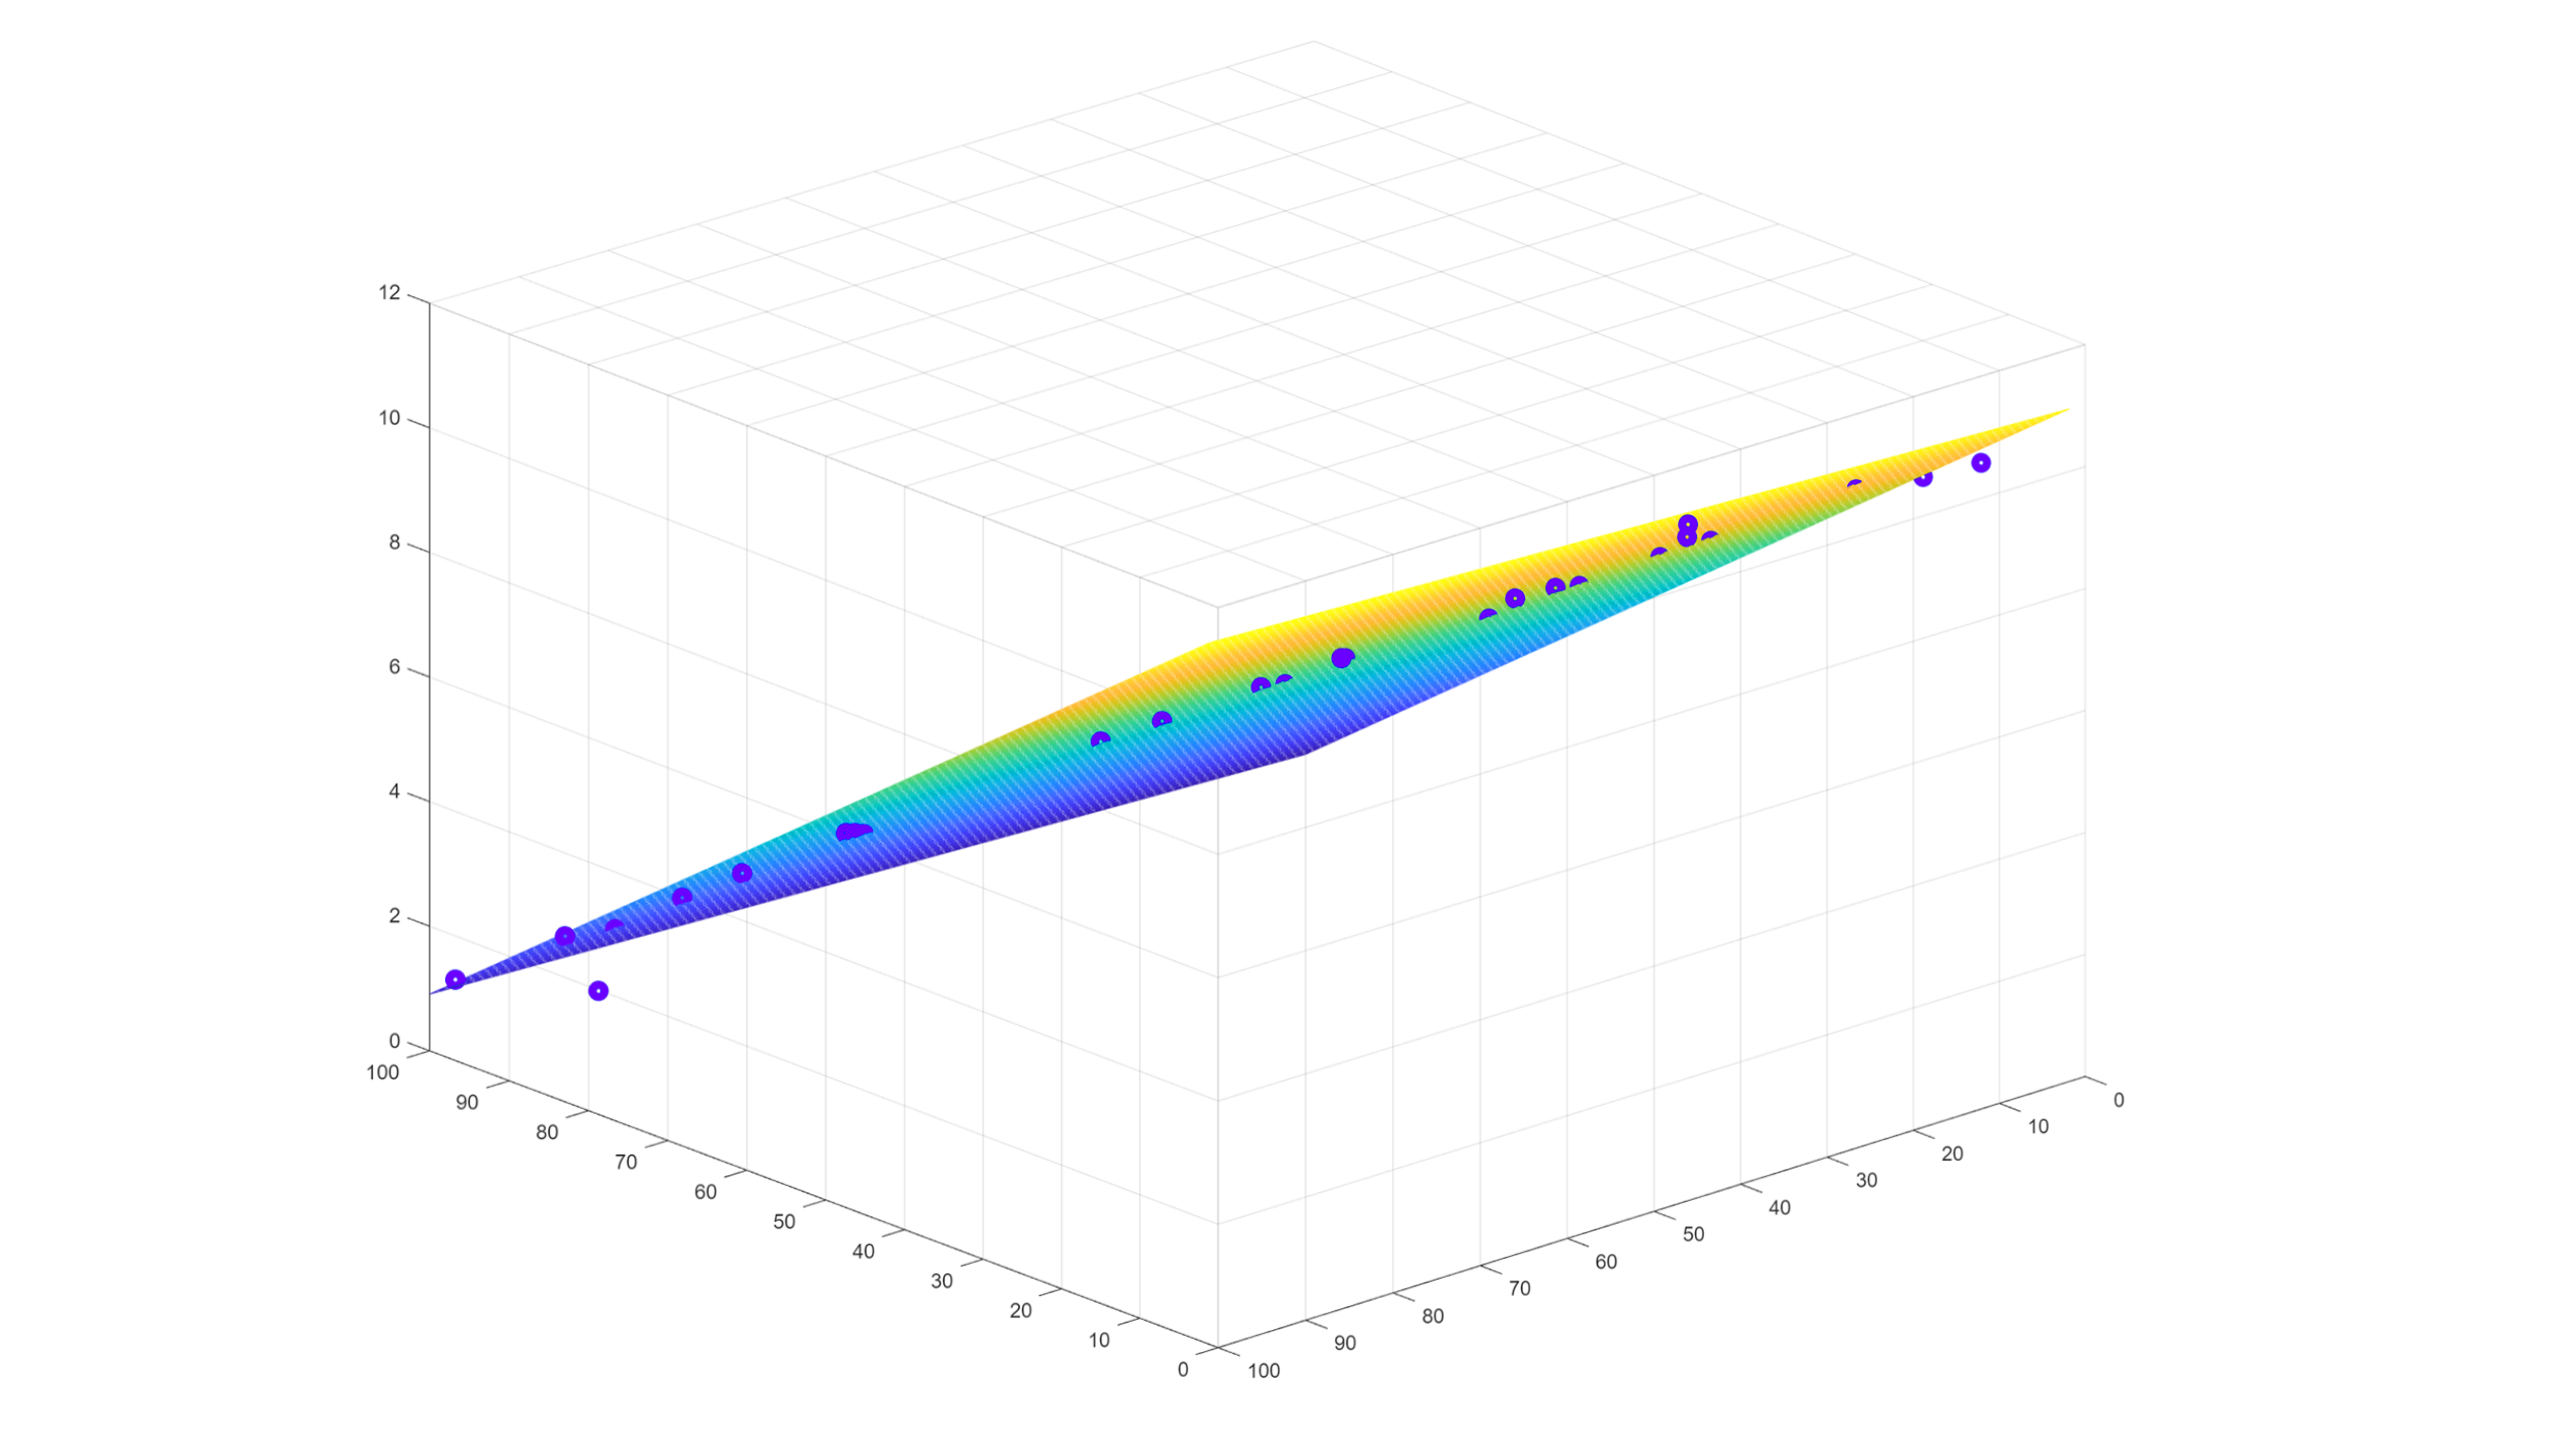 Linear regression 3d plot | Simple Linear Regression Tutorial for Machine Learning (ML) with Python